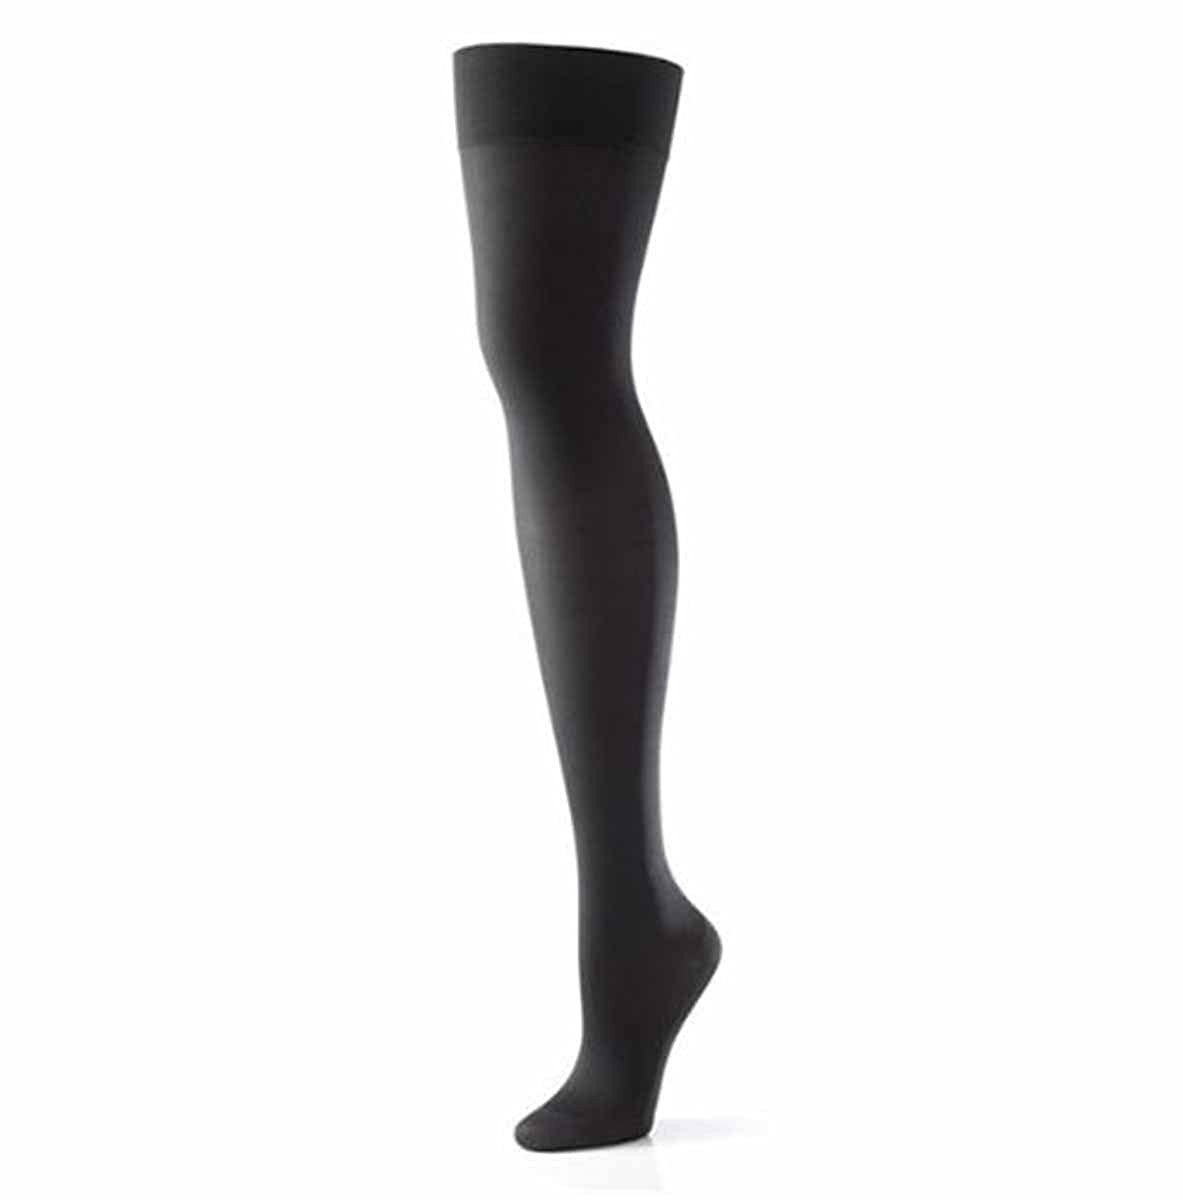 9b6cb3d41c Activa Class 1 Thigh Compression Support Stockings 14-17mmHg: Amazon.co.uk:  Health & Personal Care